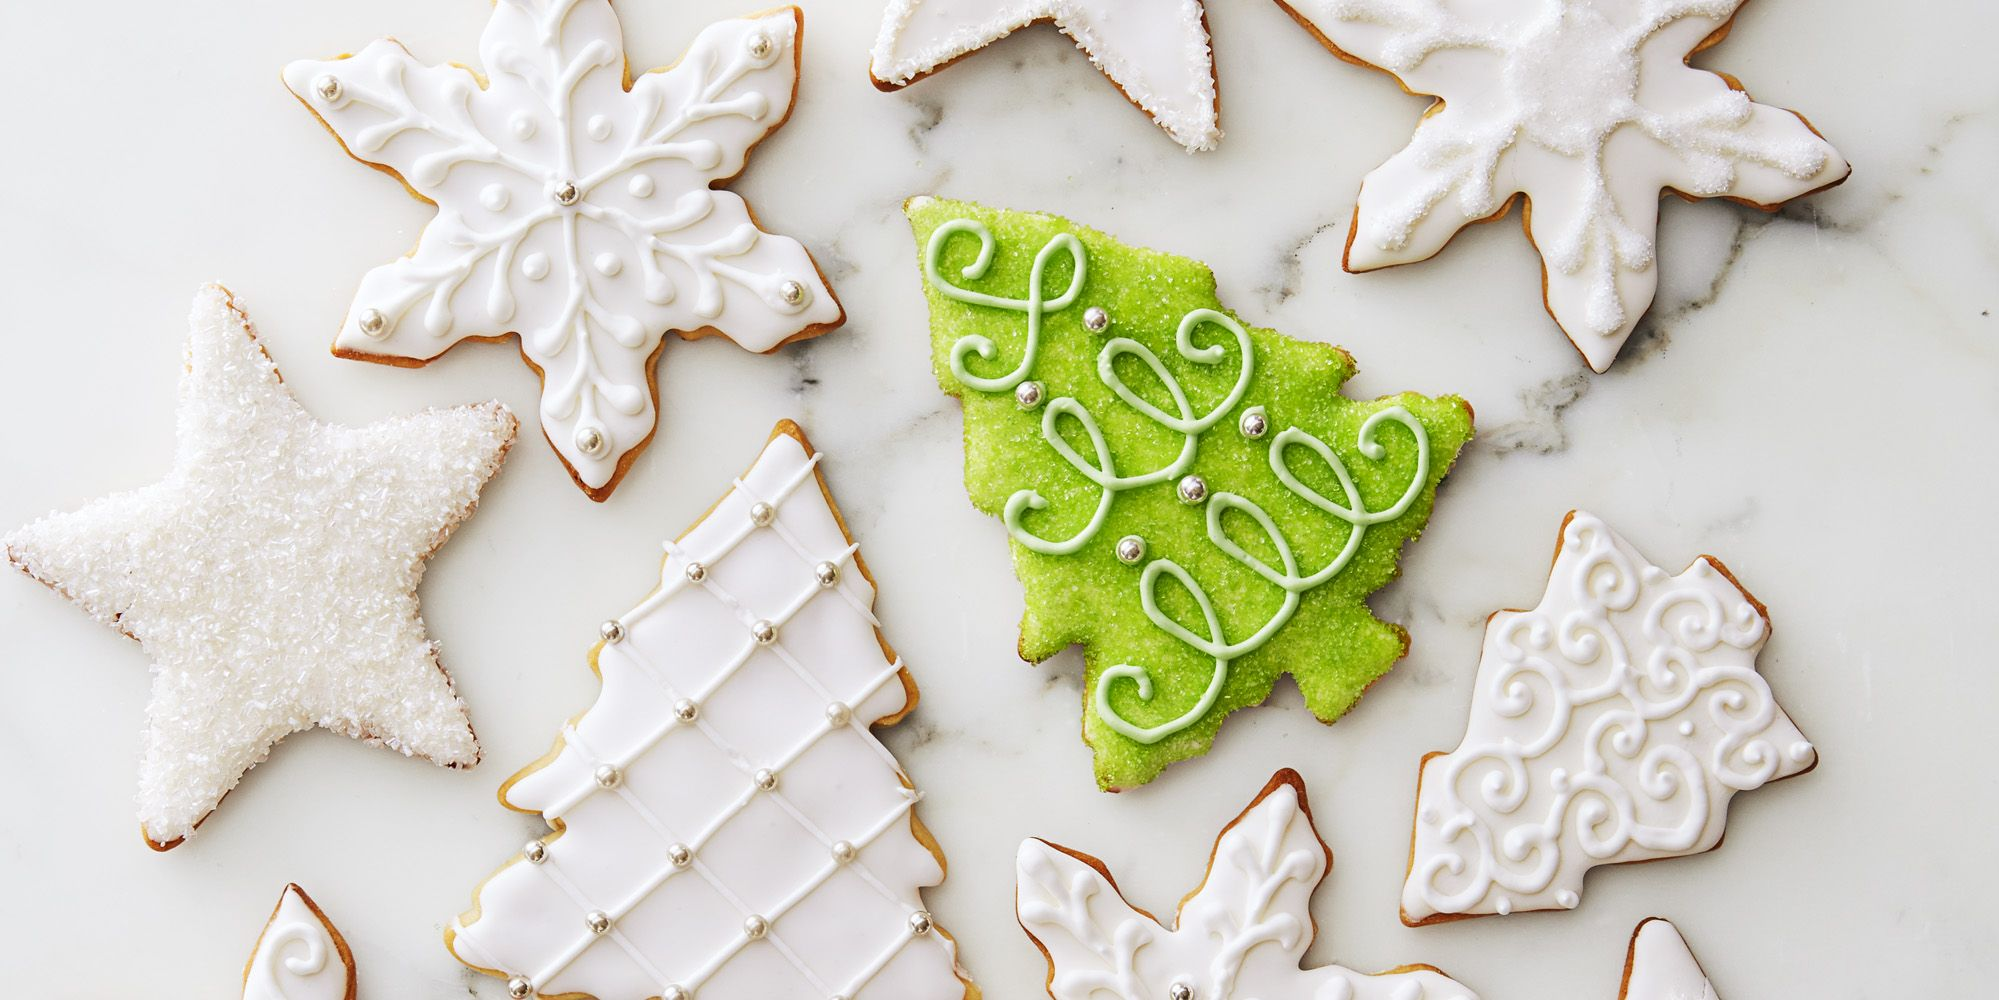 Tips for Making and Freezing Cookies - Make-Ahead Christmas Cookies